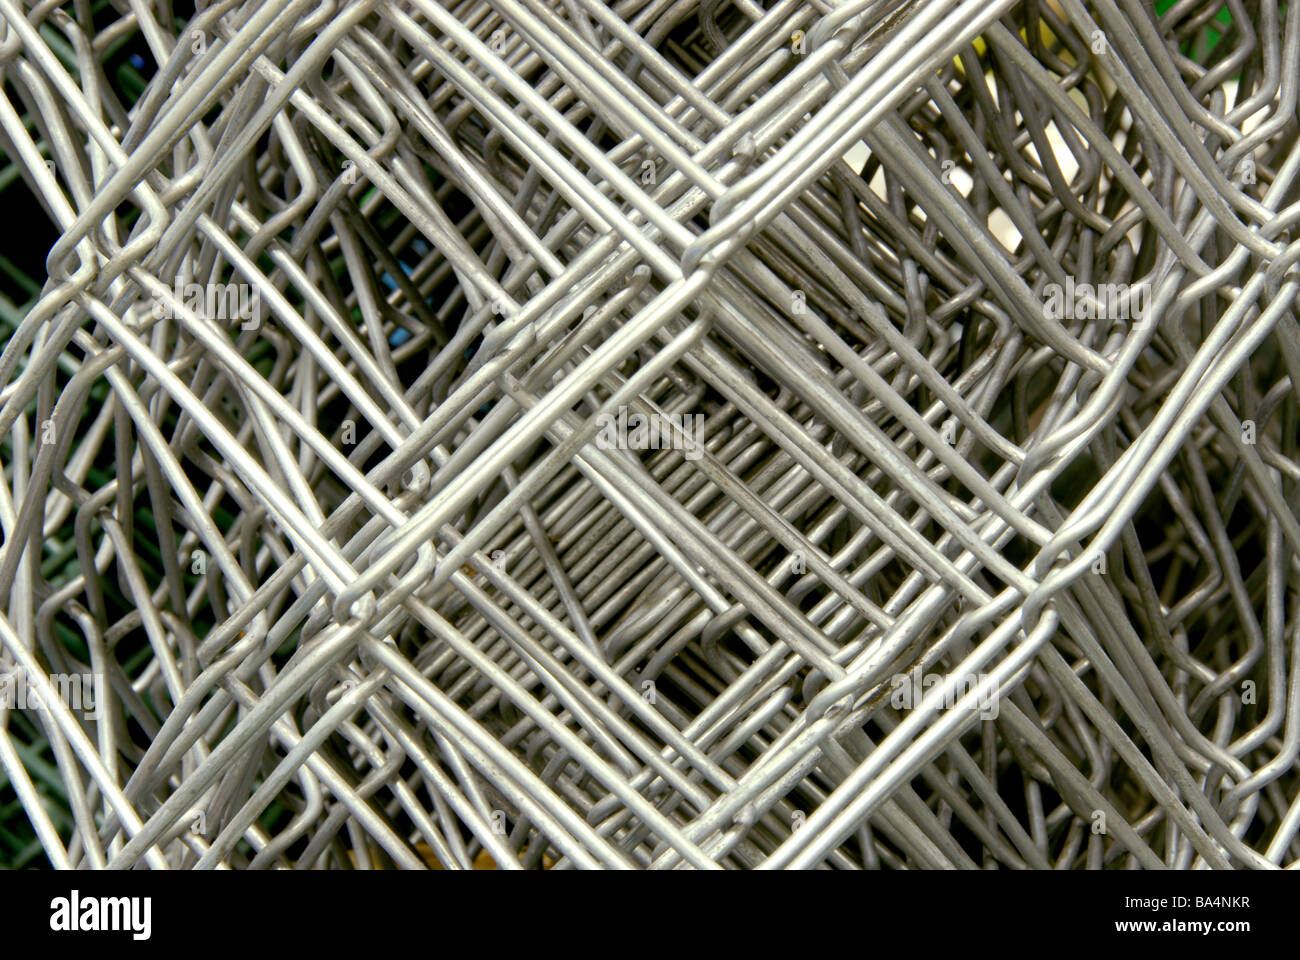 Metal net in close up ready to buy in shop - Stock Image